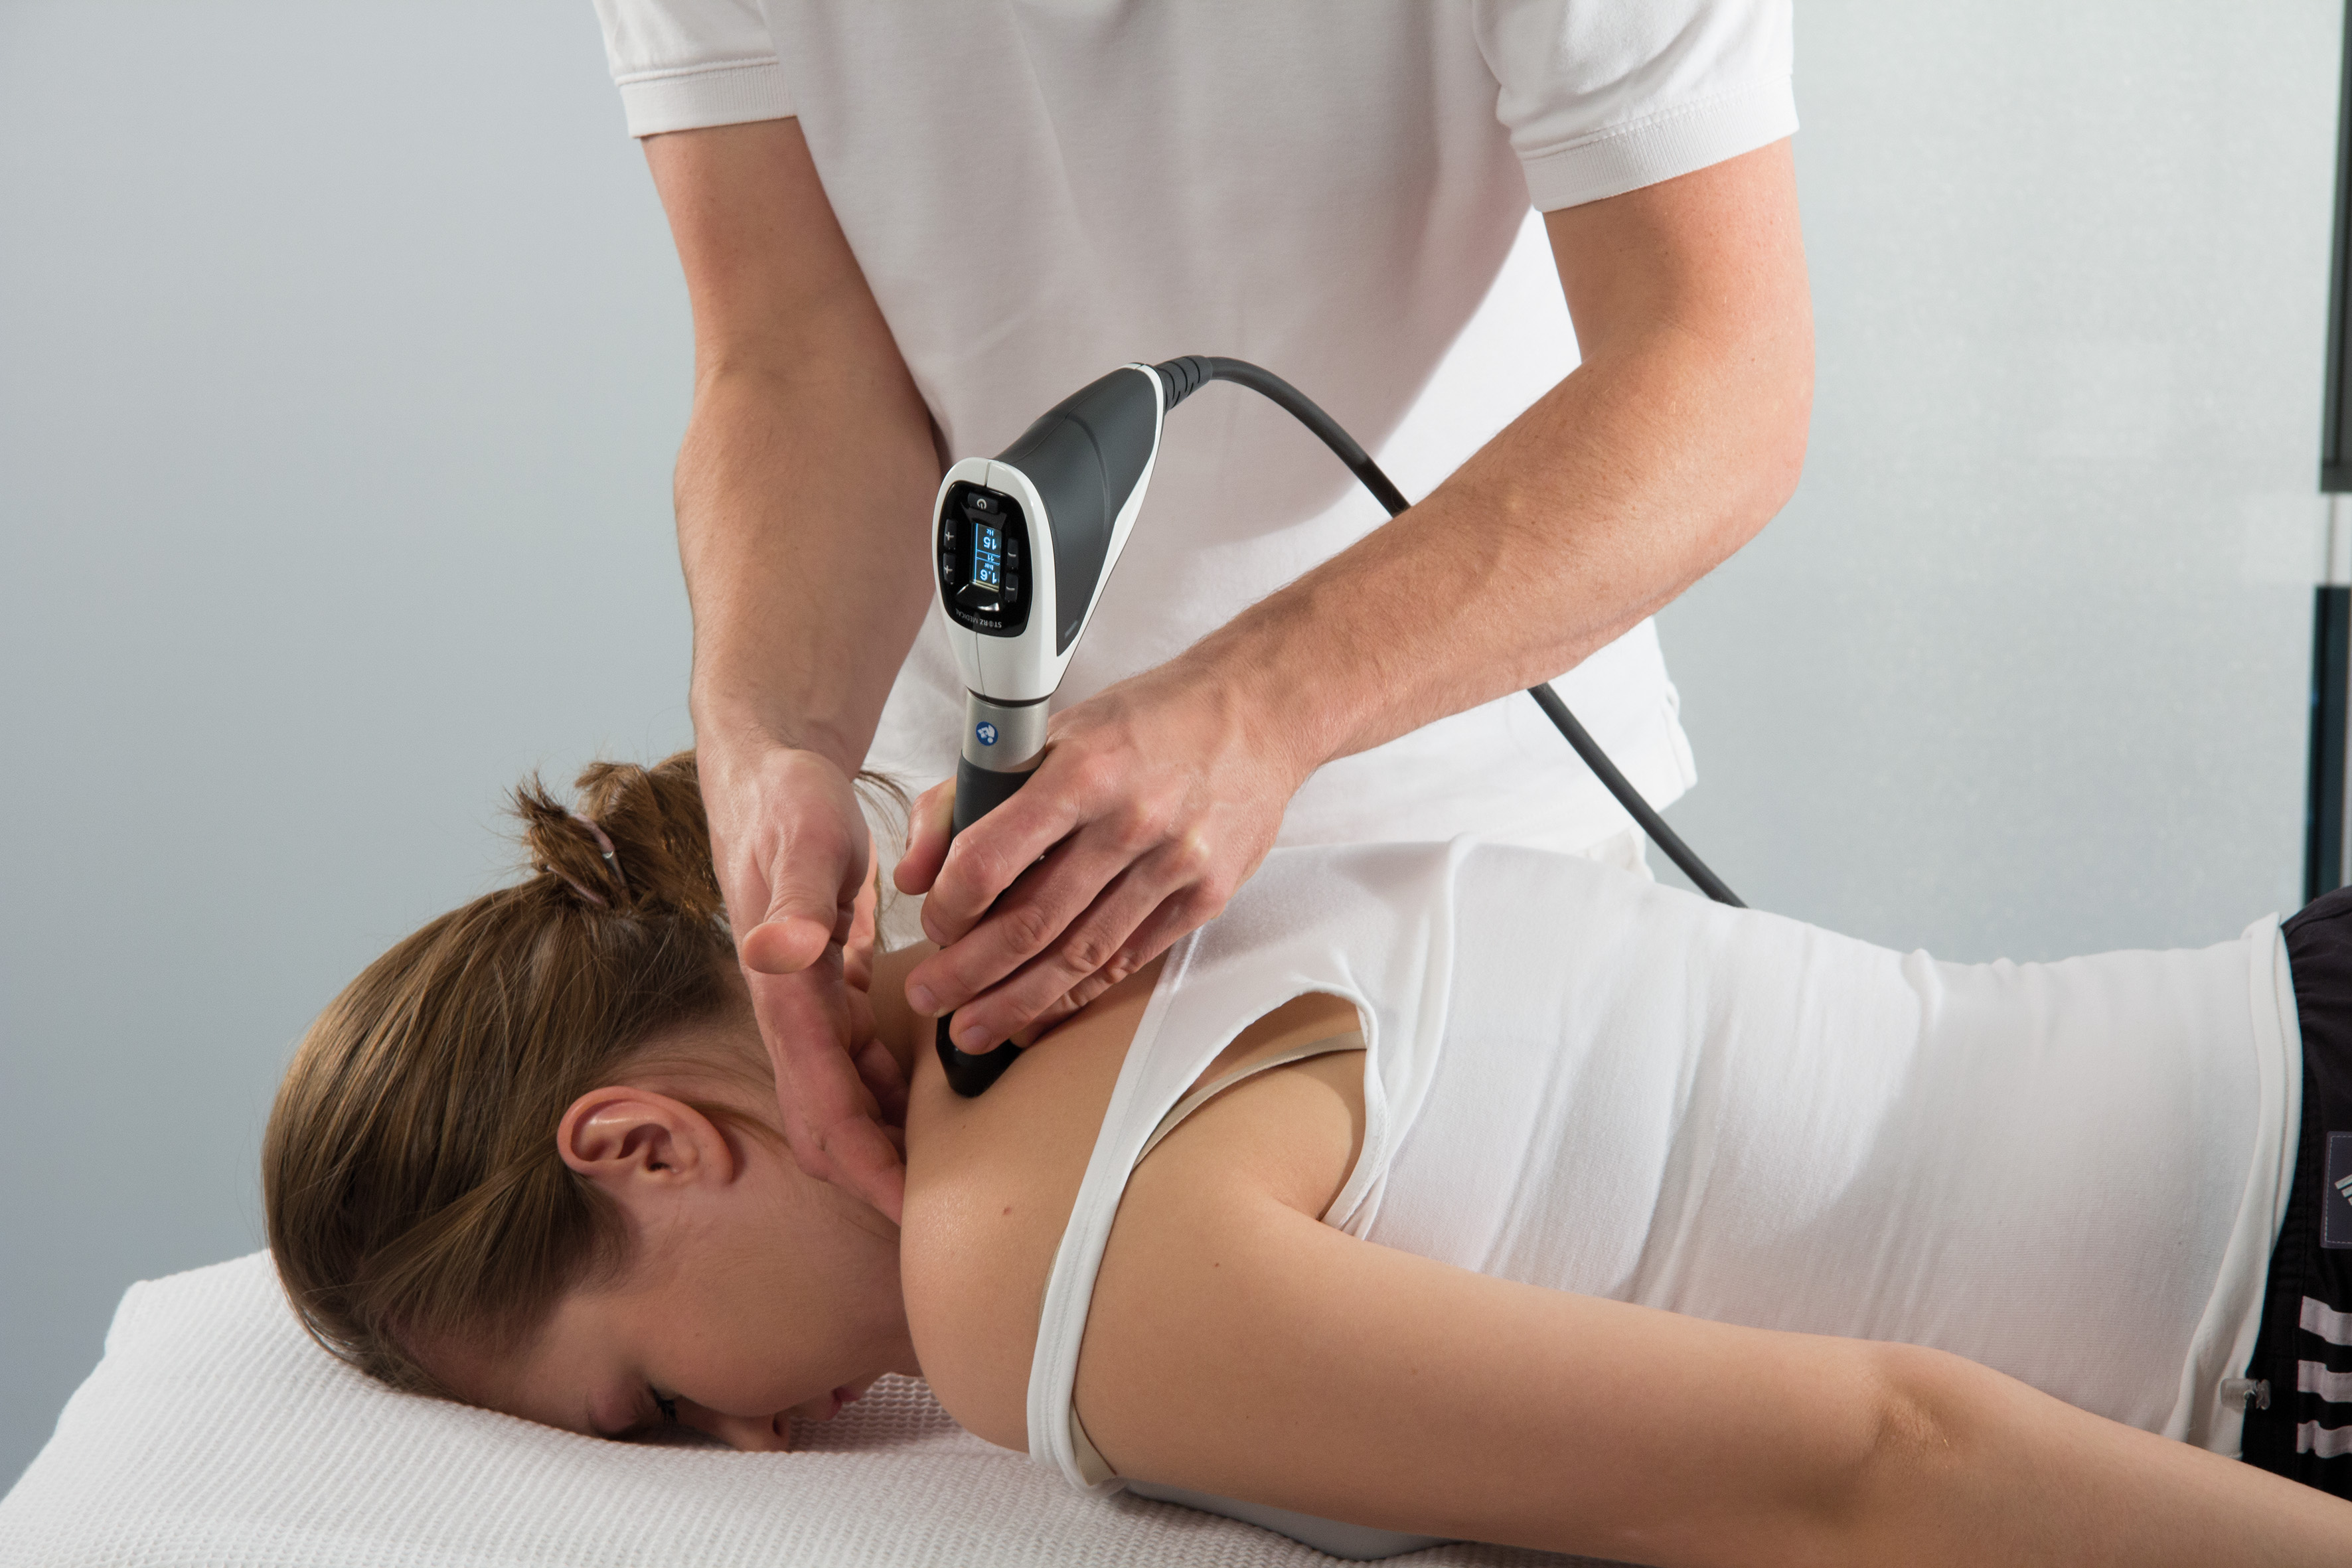 Neck - shockwave therapy